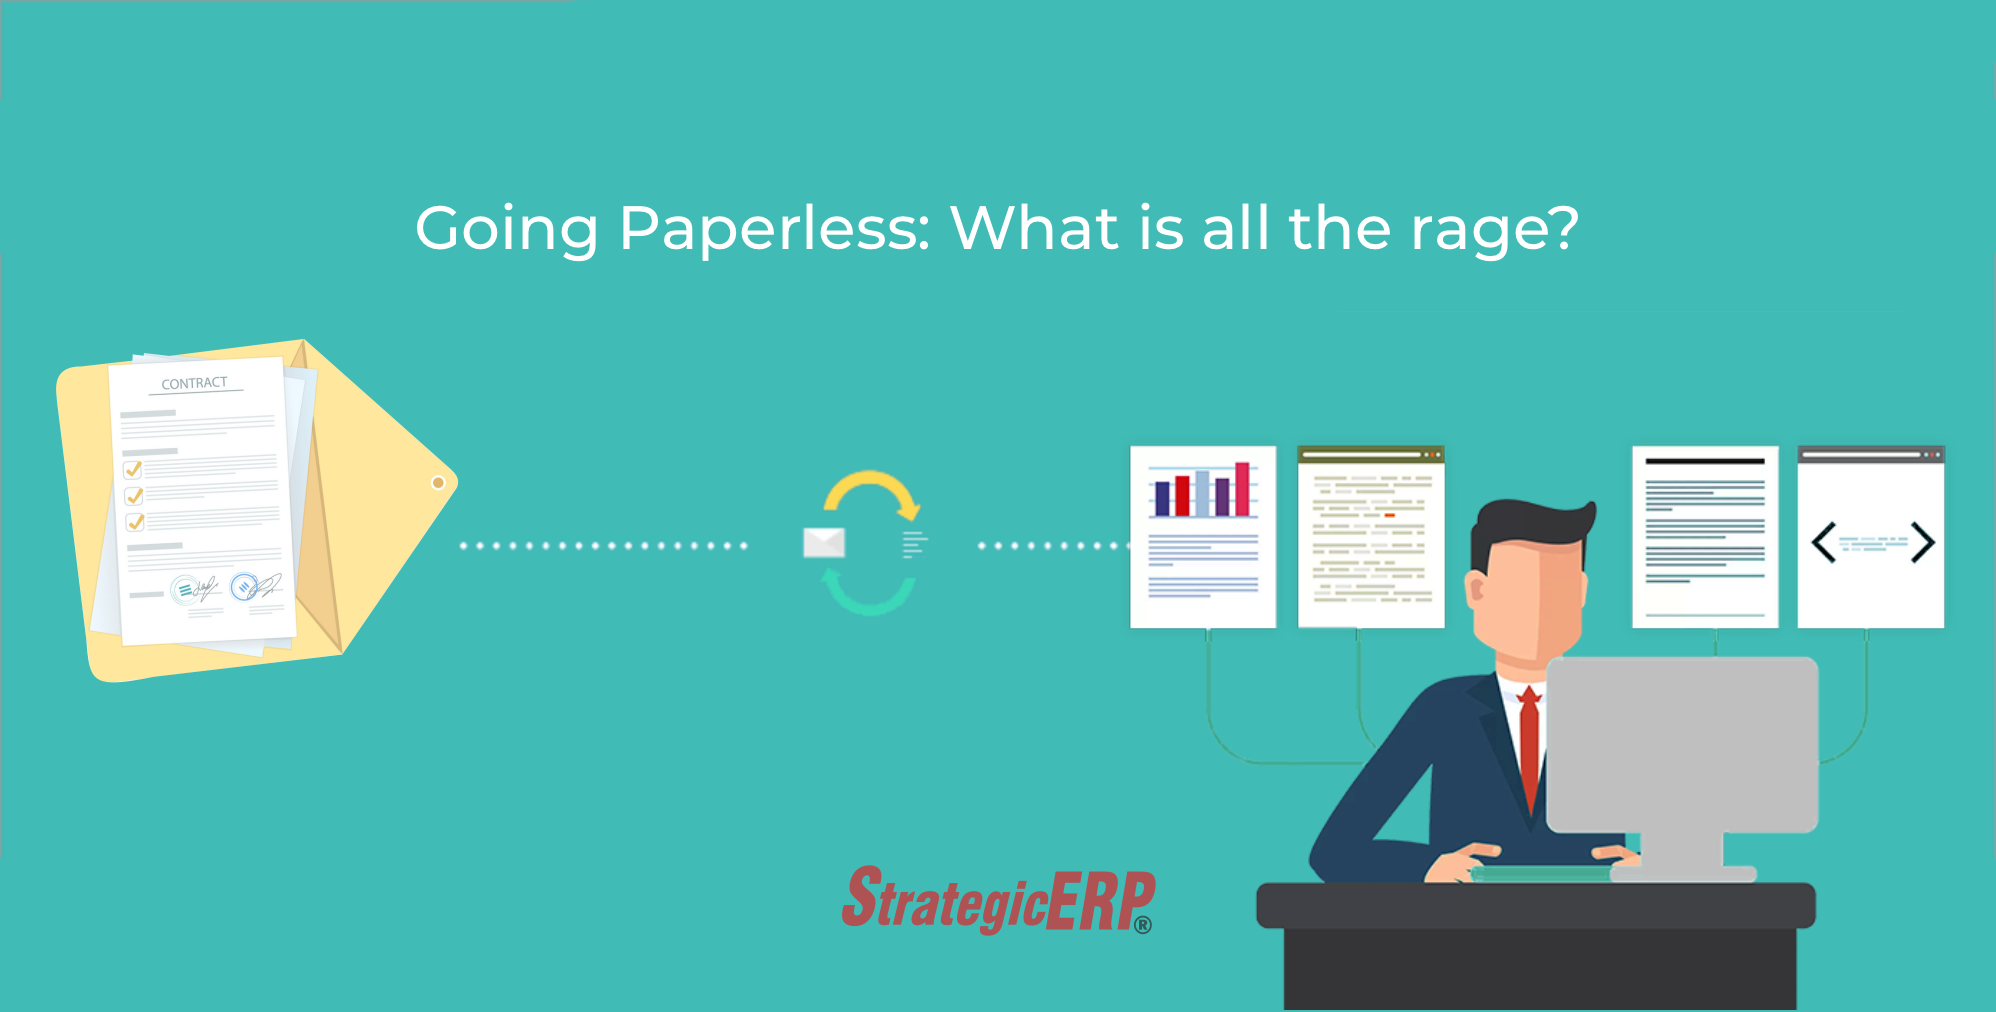 Going Paperless: What is all the rage?